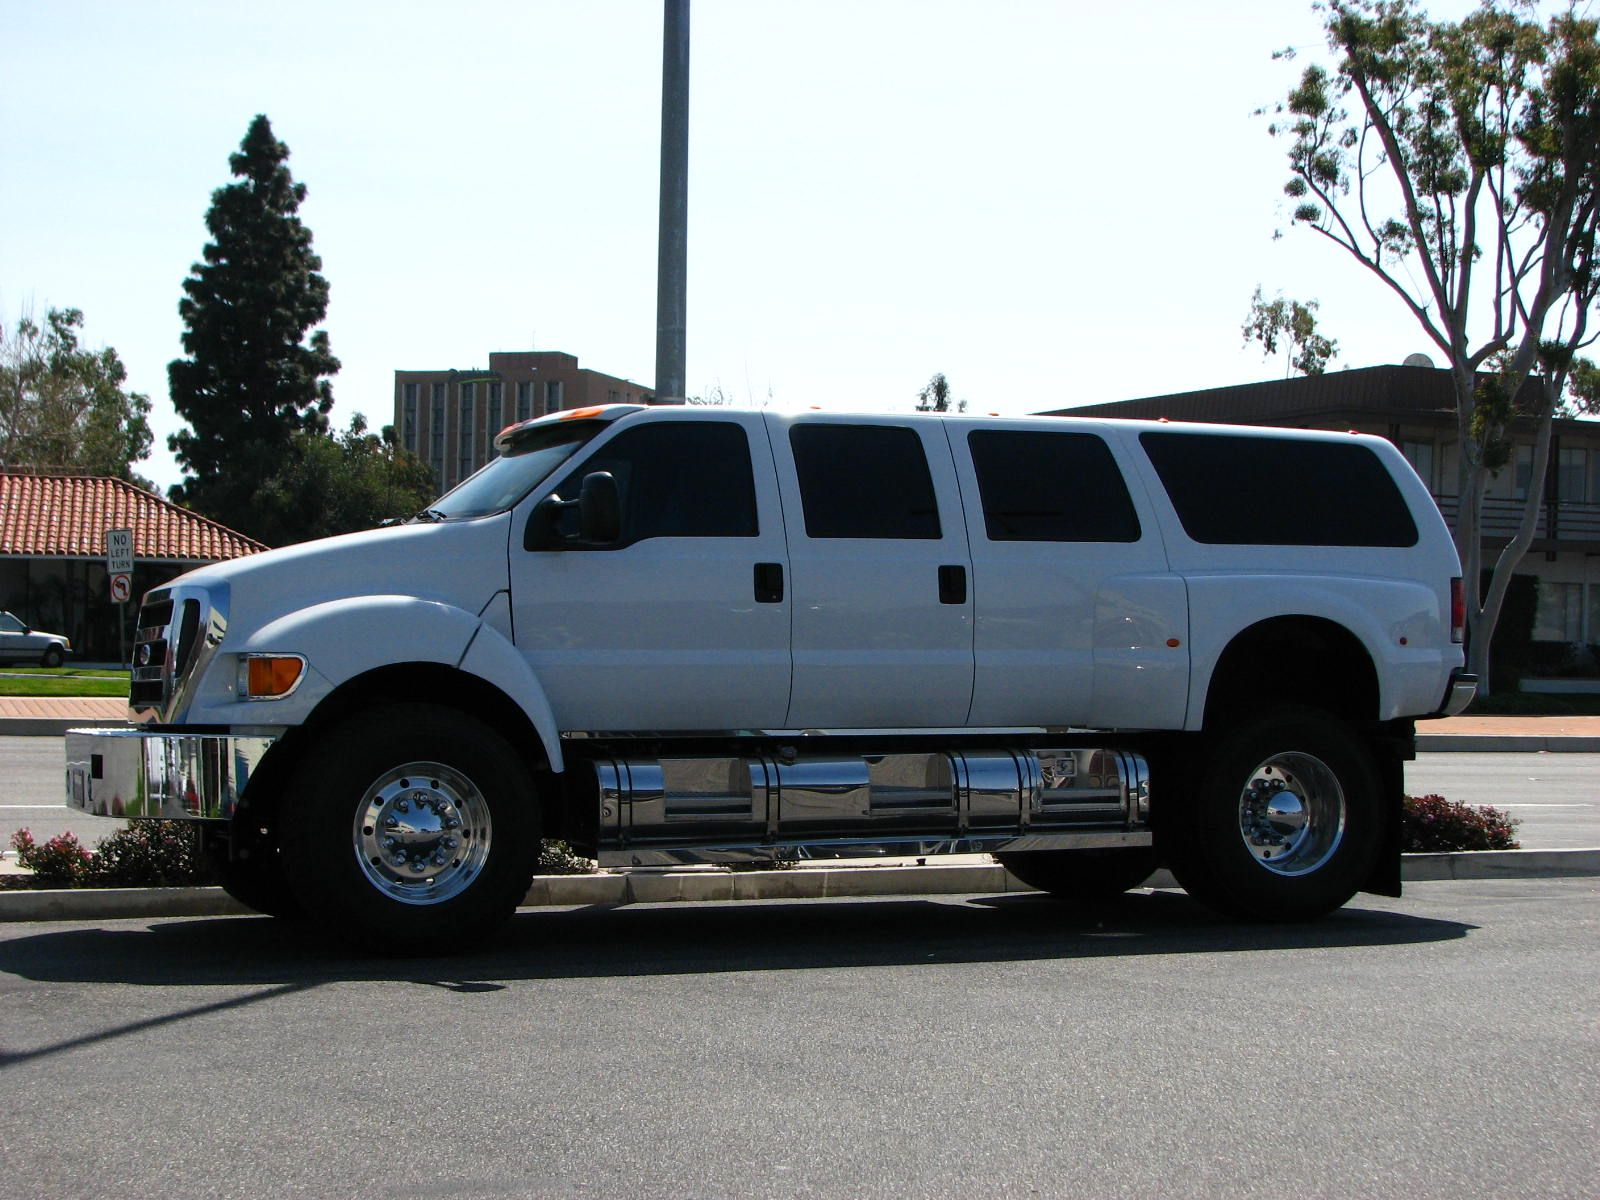 Image detail for file ford f650 4x4 truck flickr highway patrol images